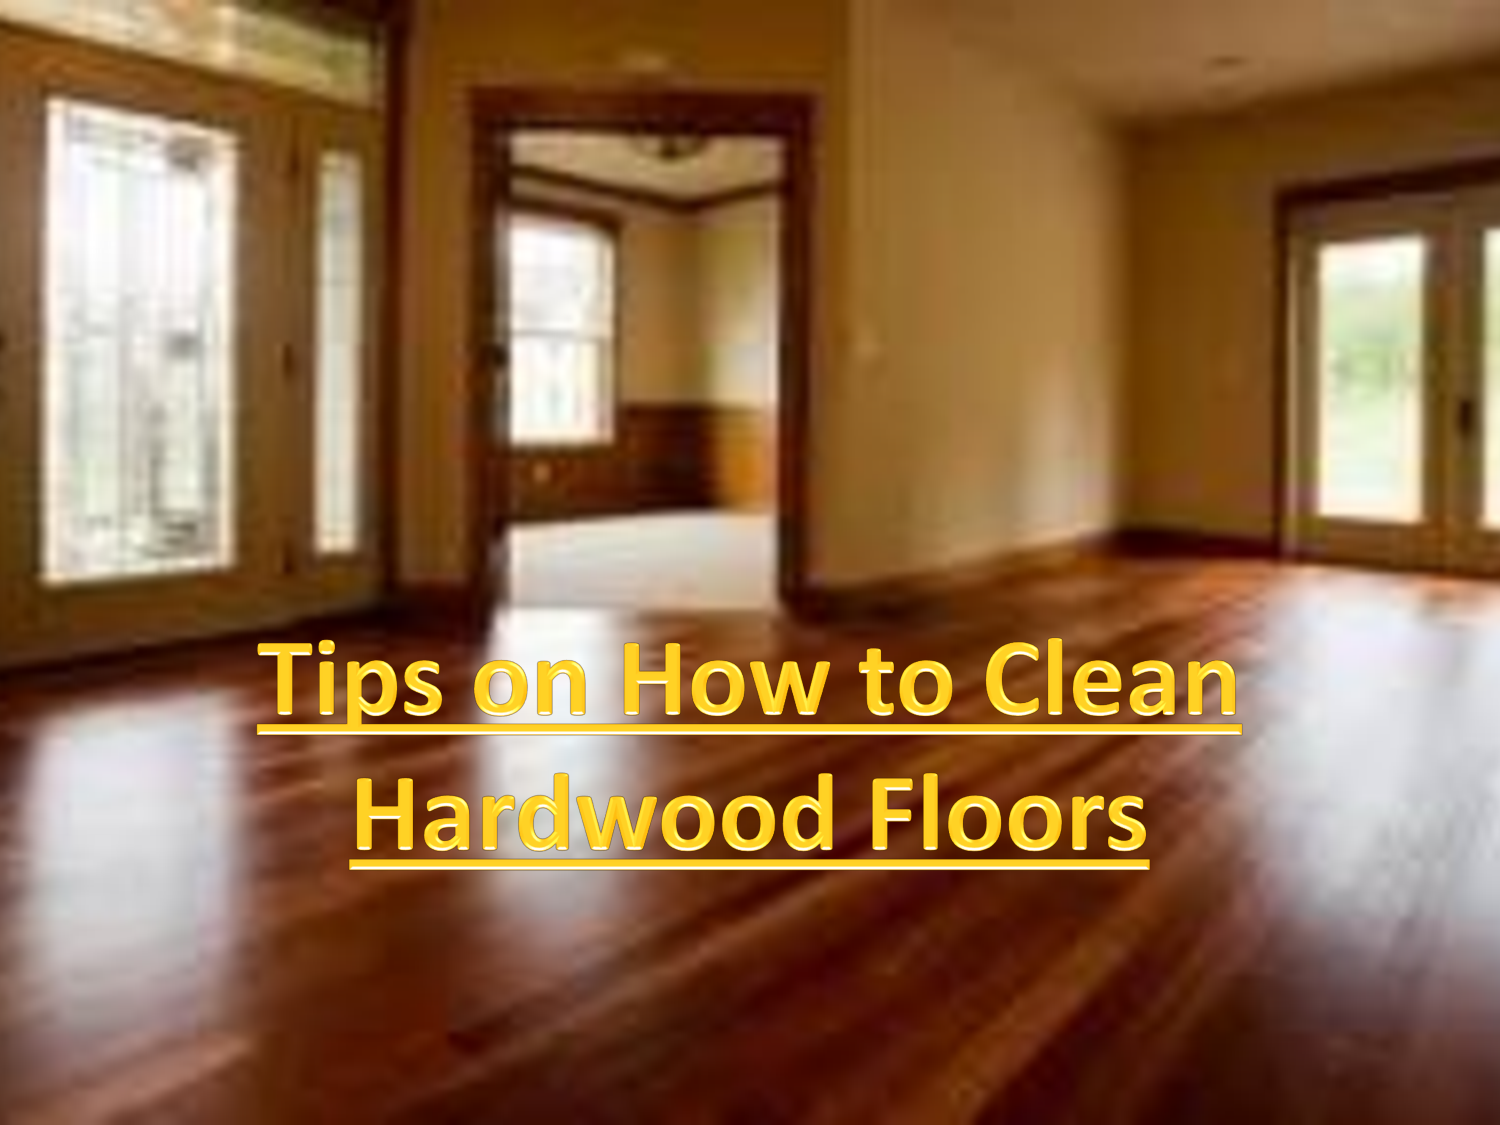 To Damp Mop Wood Floors Use Plain Water Or A Water Based